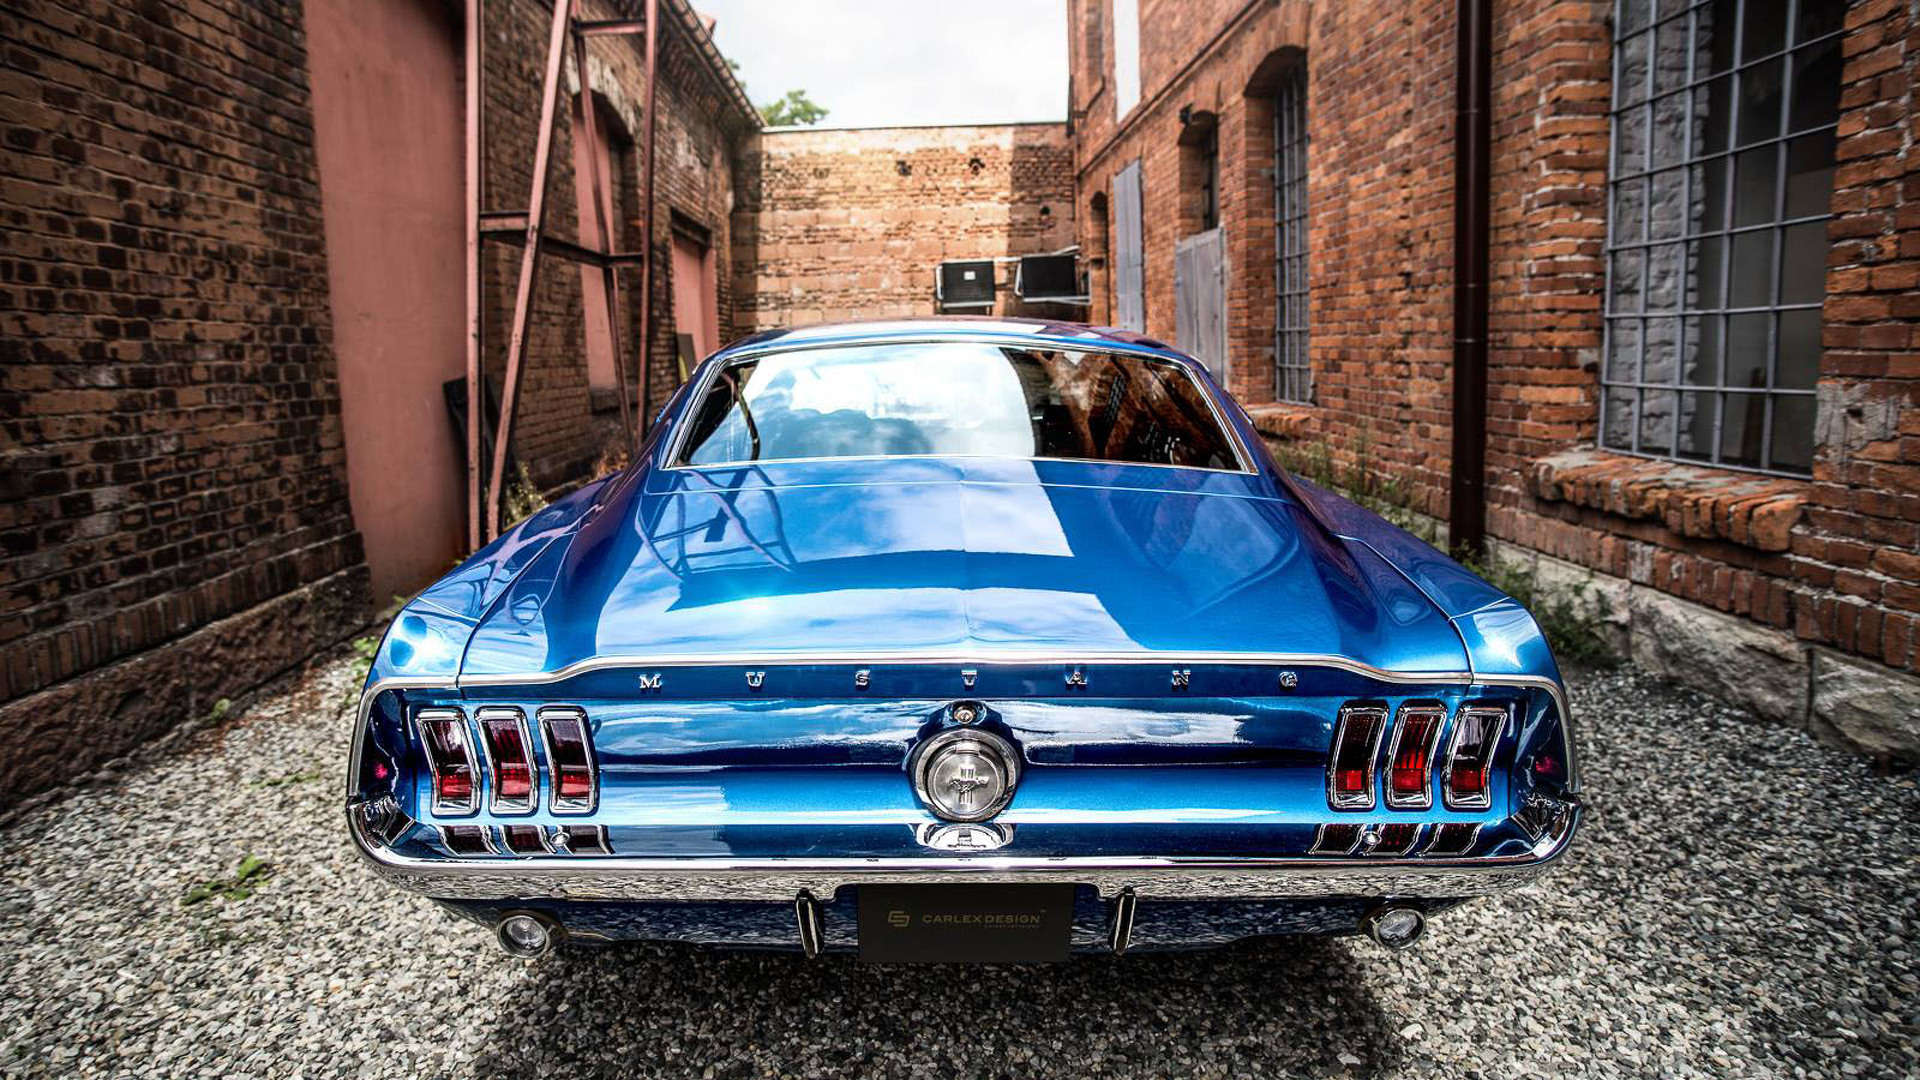 1967 Ford Mustang Gets A Modern Interior By Carlex Design